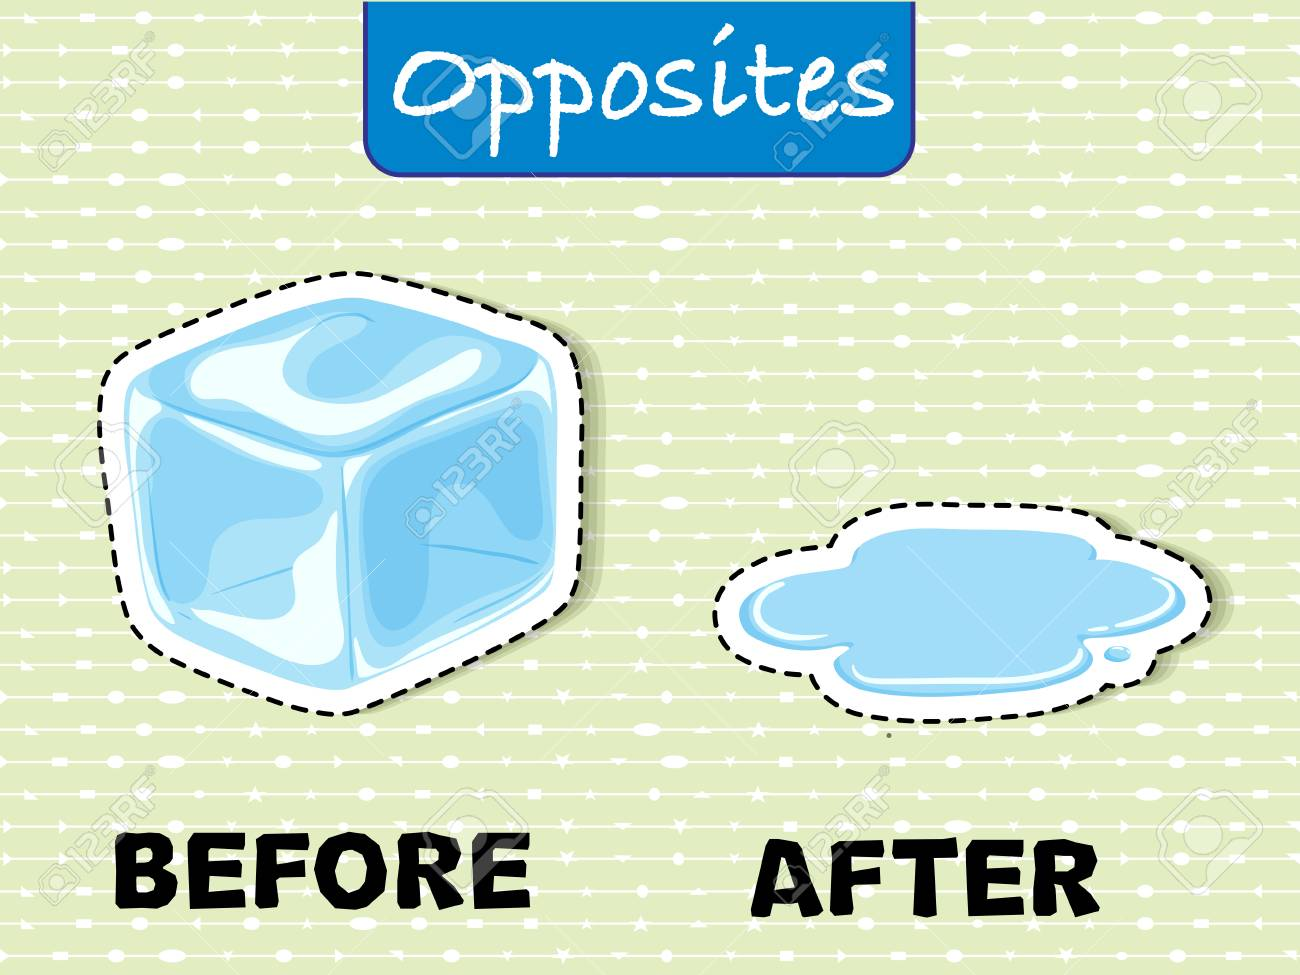 Opposite words for before and after illustration